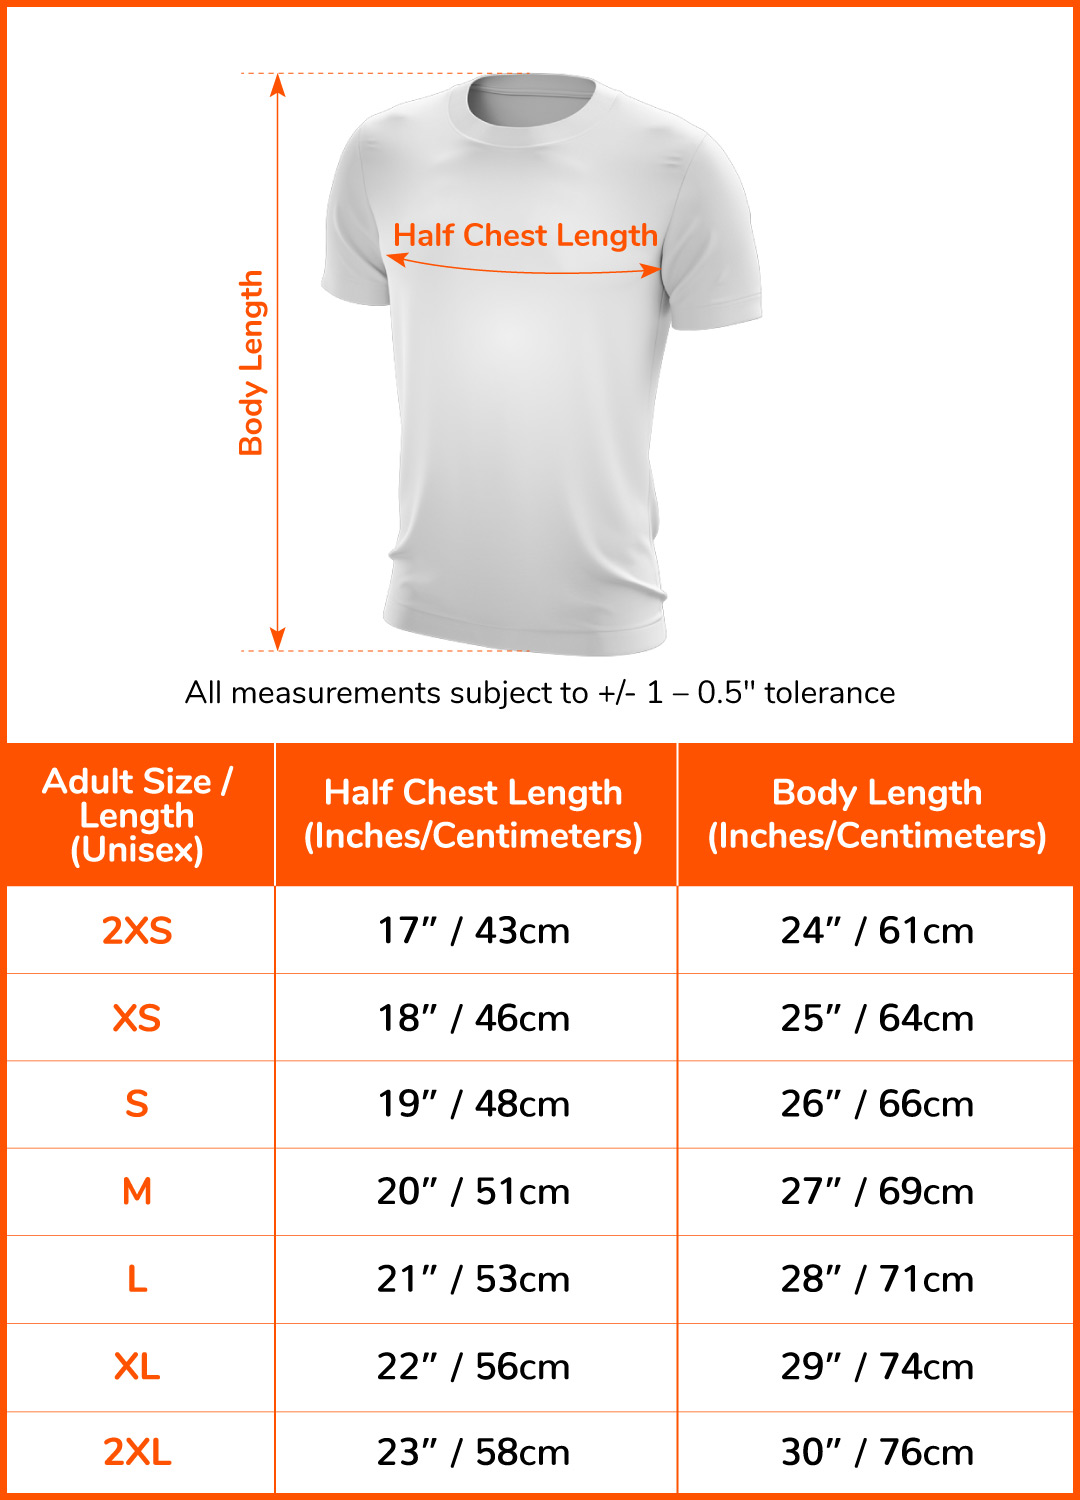 Finisher T-Shirt - 8.1km#size-chart